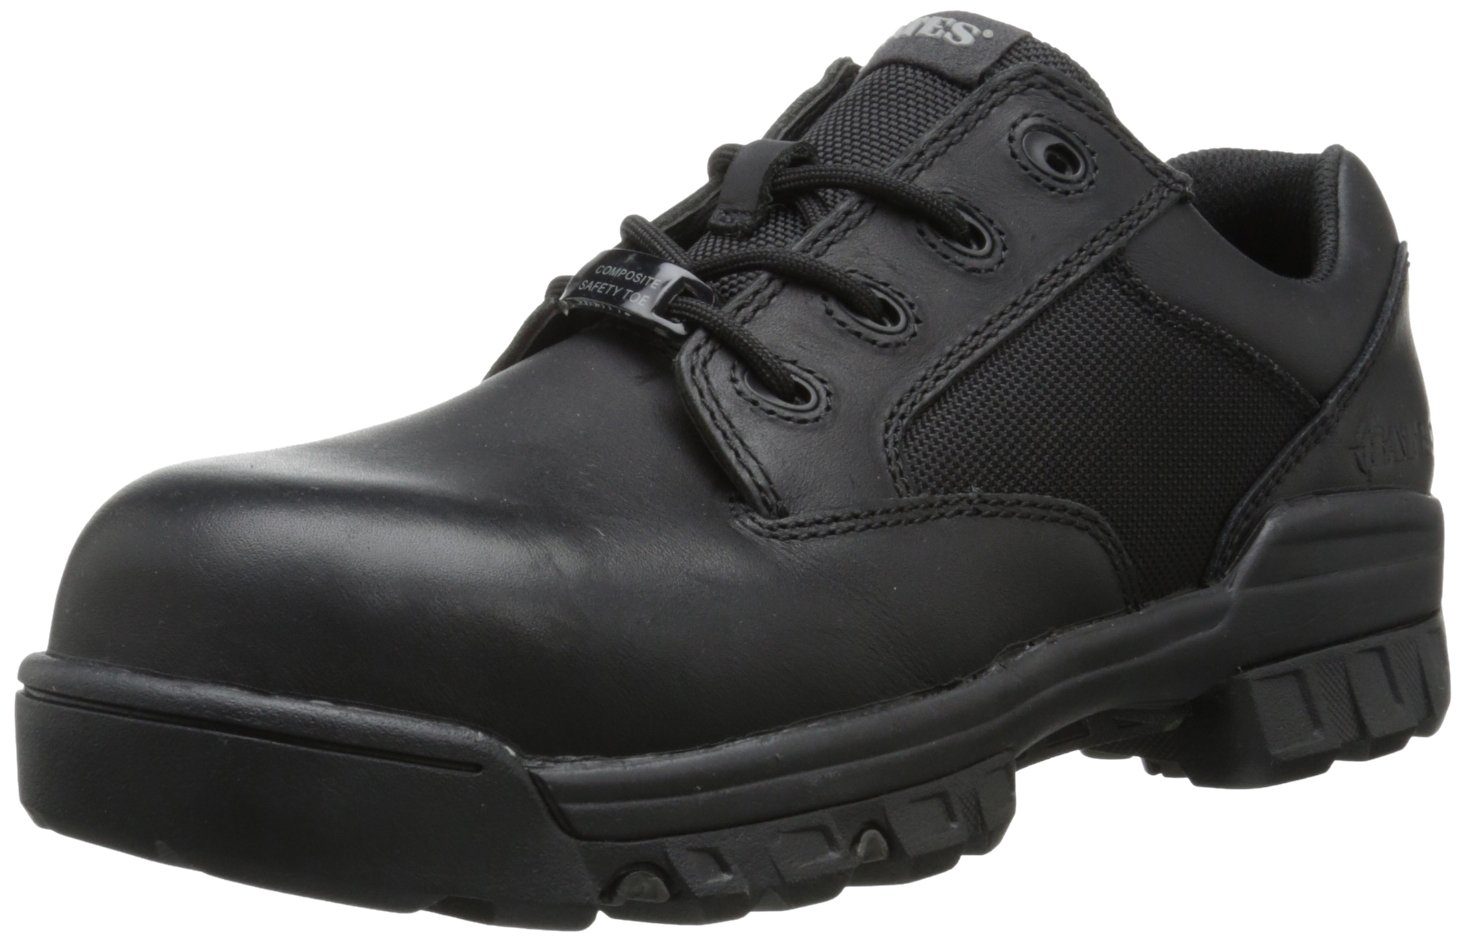 Bates Men's Sport Comp Toe Uniform Work Boot, Black, 11 M US by Bates